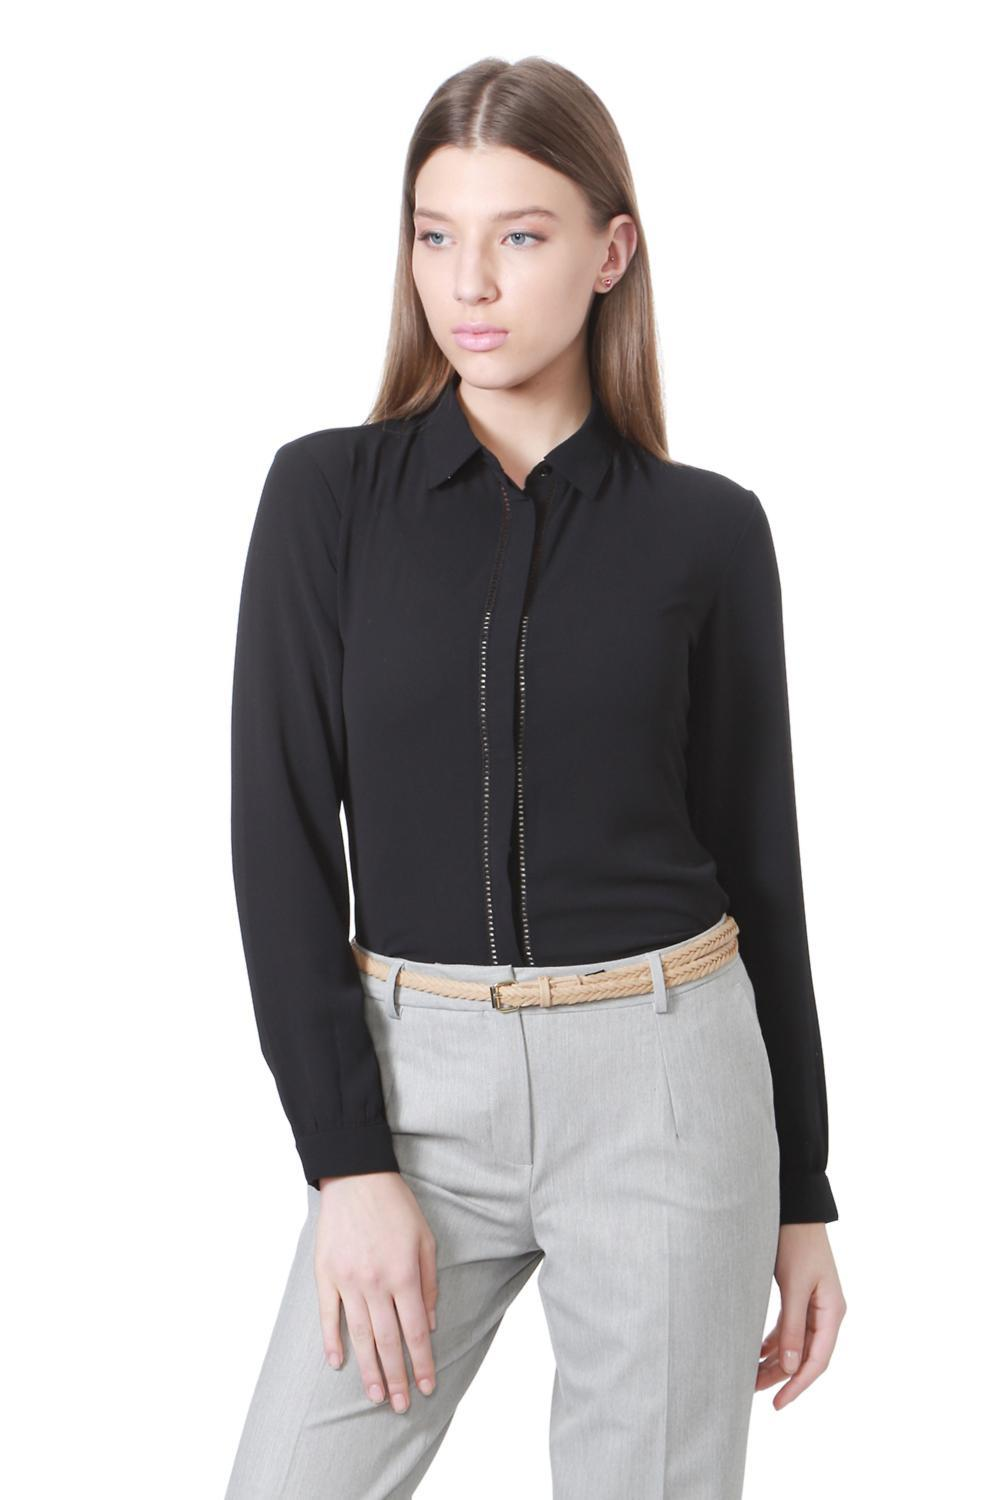 New Ladies Grey Blouse Style Shirt Formal Wear !!BUY ONE GET ONE FREE!!